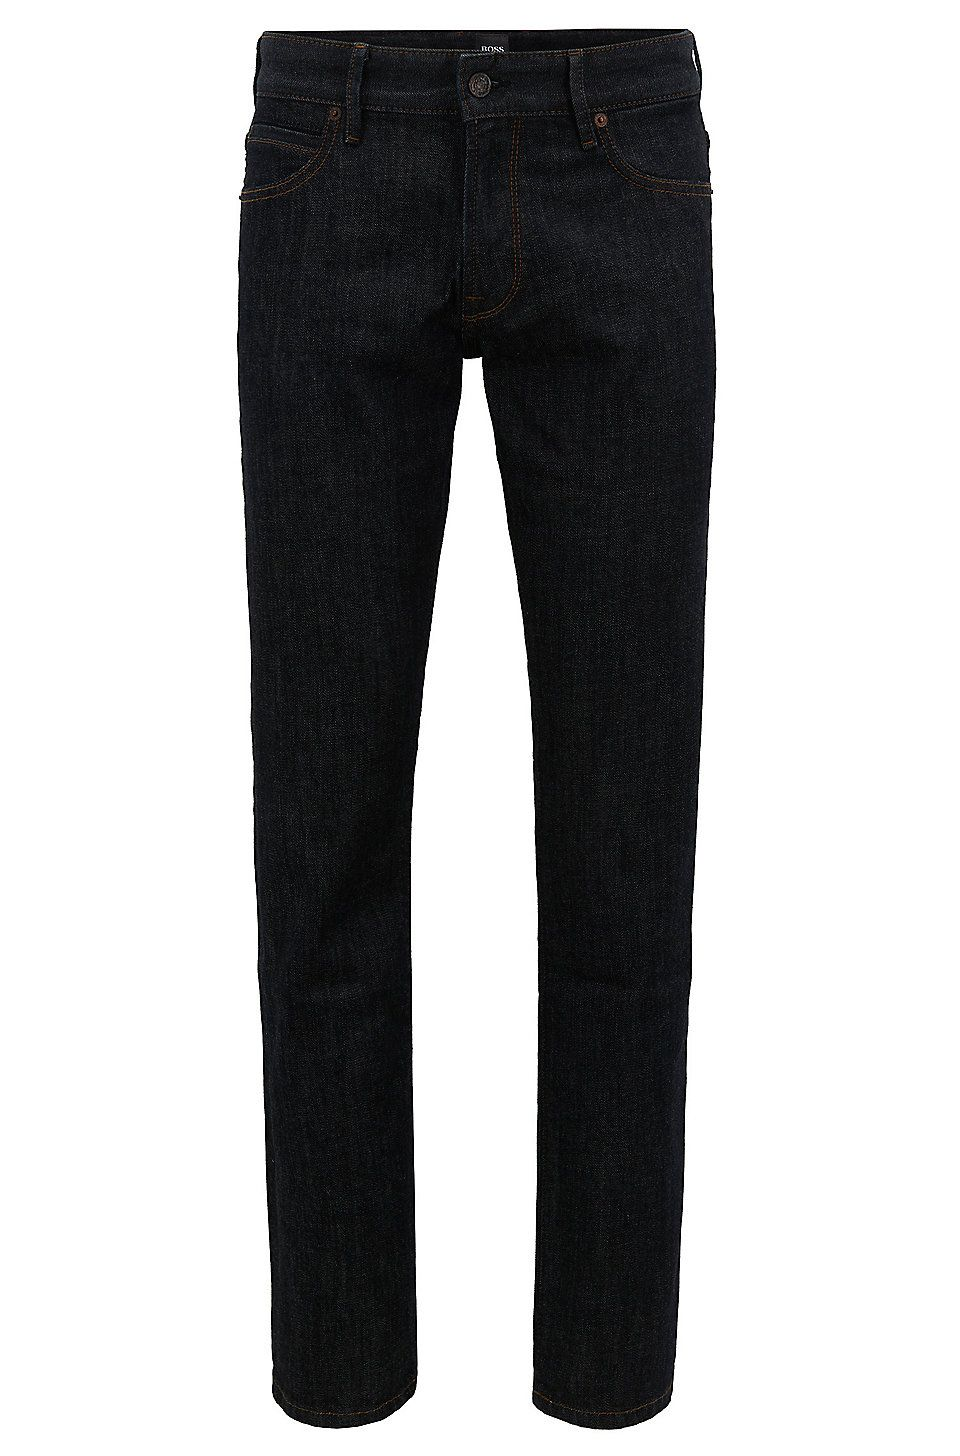 063f24808 HUGO BOSS Regular fit jeans in soft stone-washed denim - Dark Blue Jeans  from BOSS for Men in the official HUGO BOSS Online Store free shipping